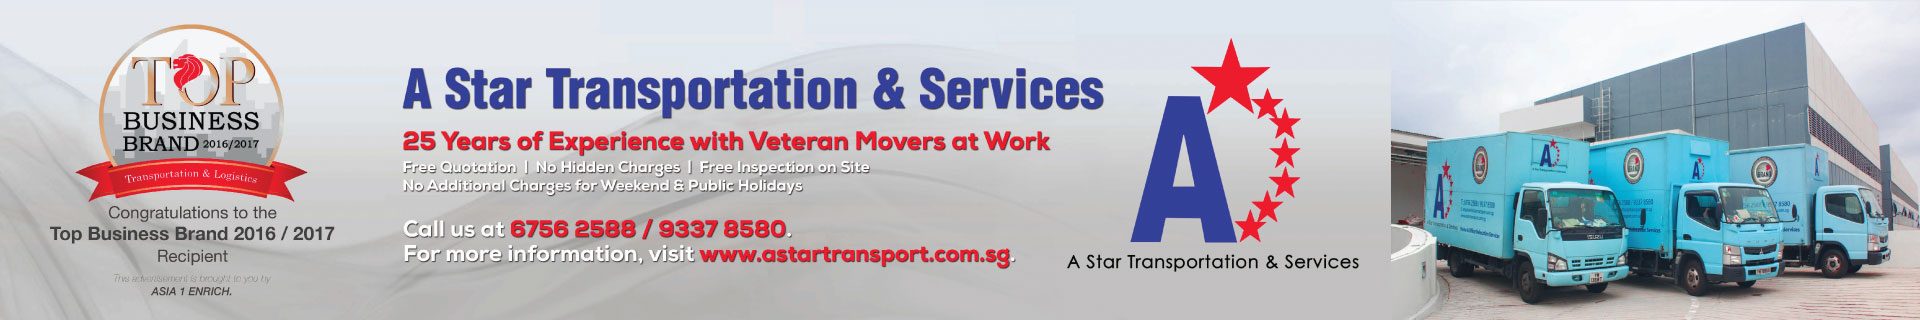 Professional moving company in Singapore